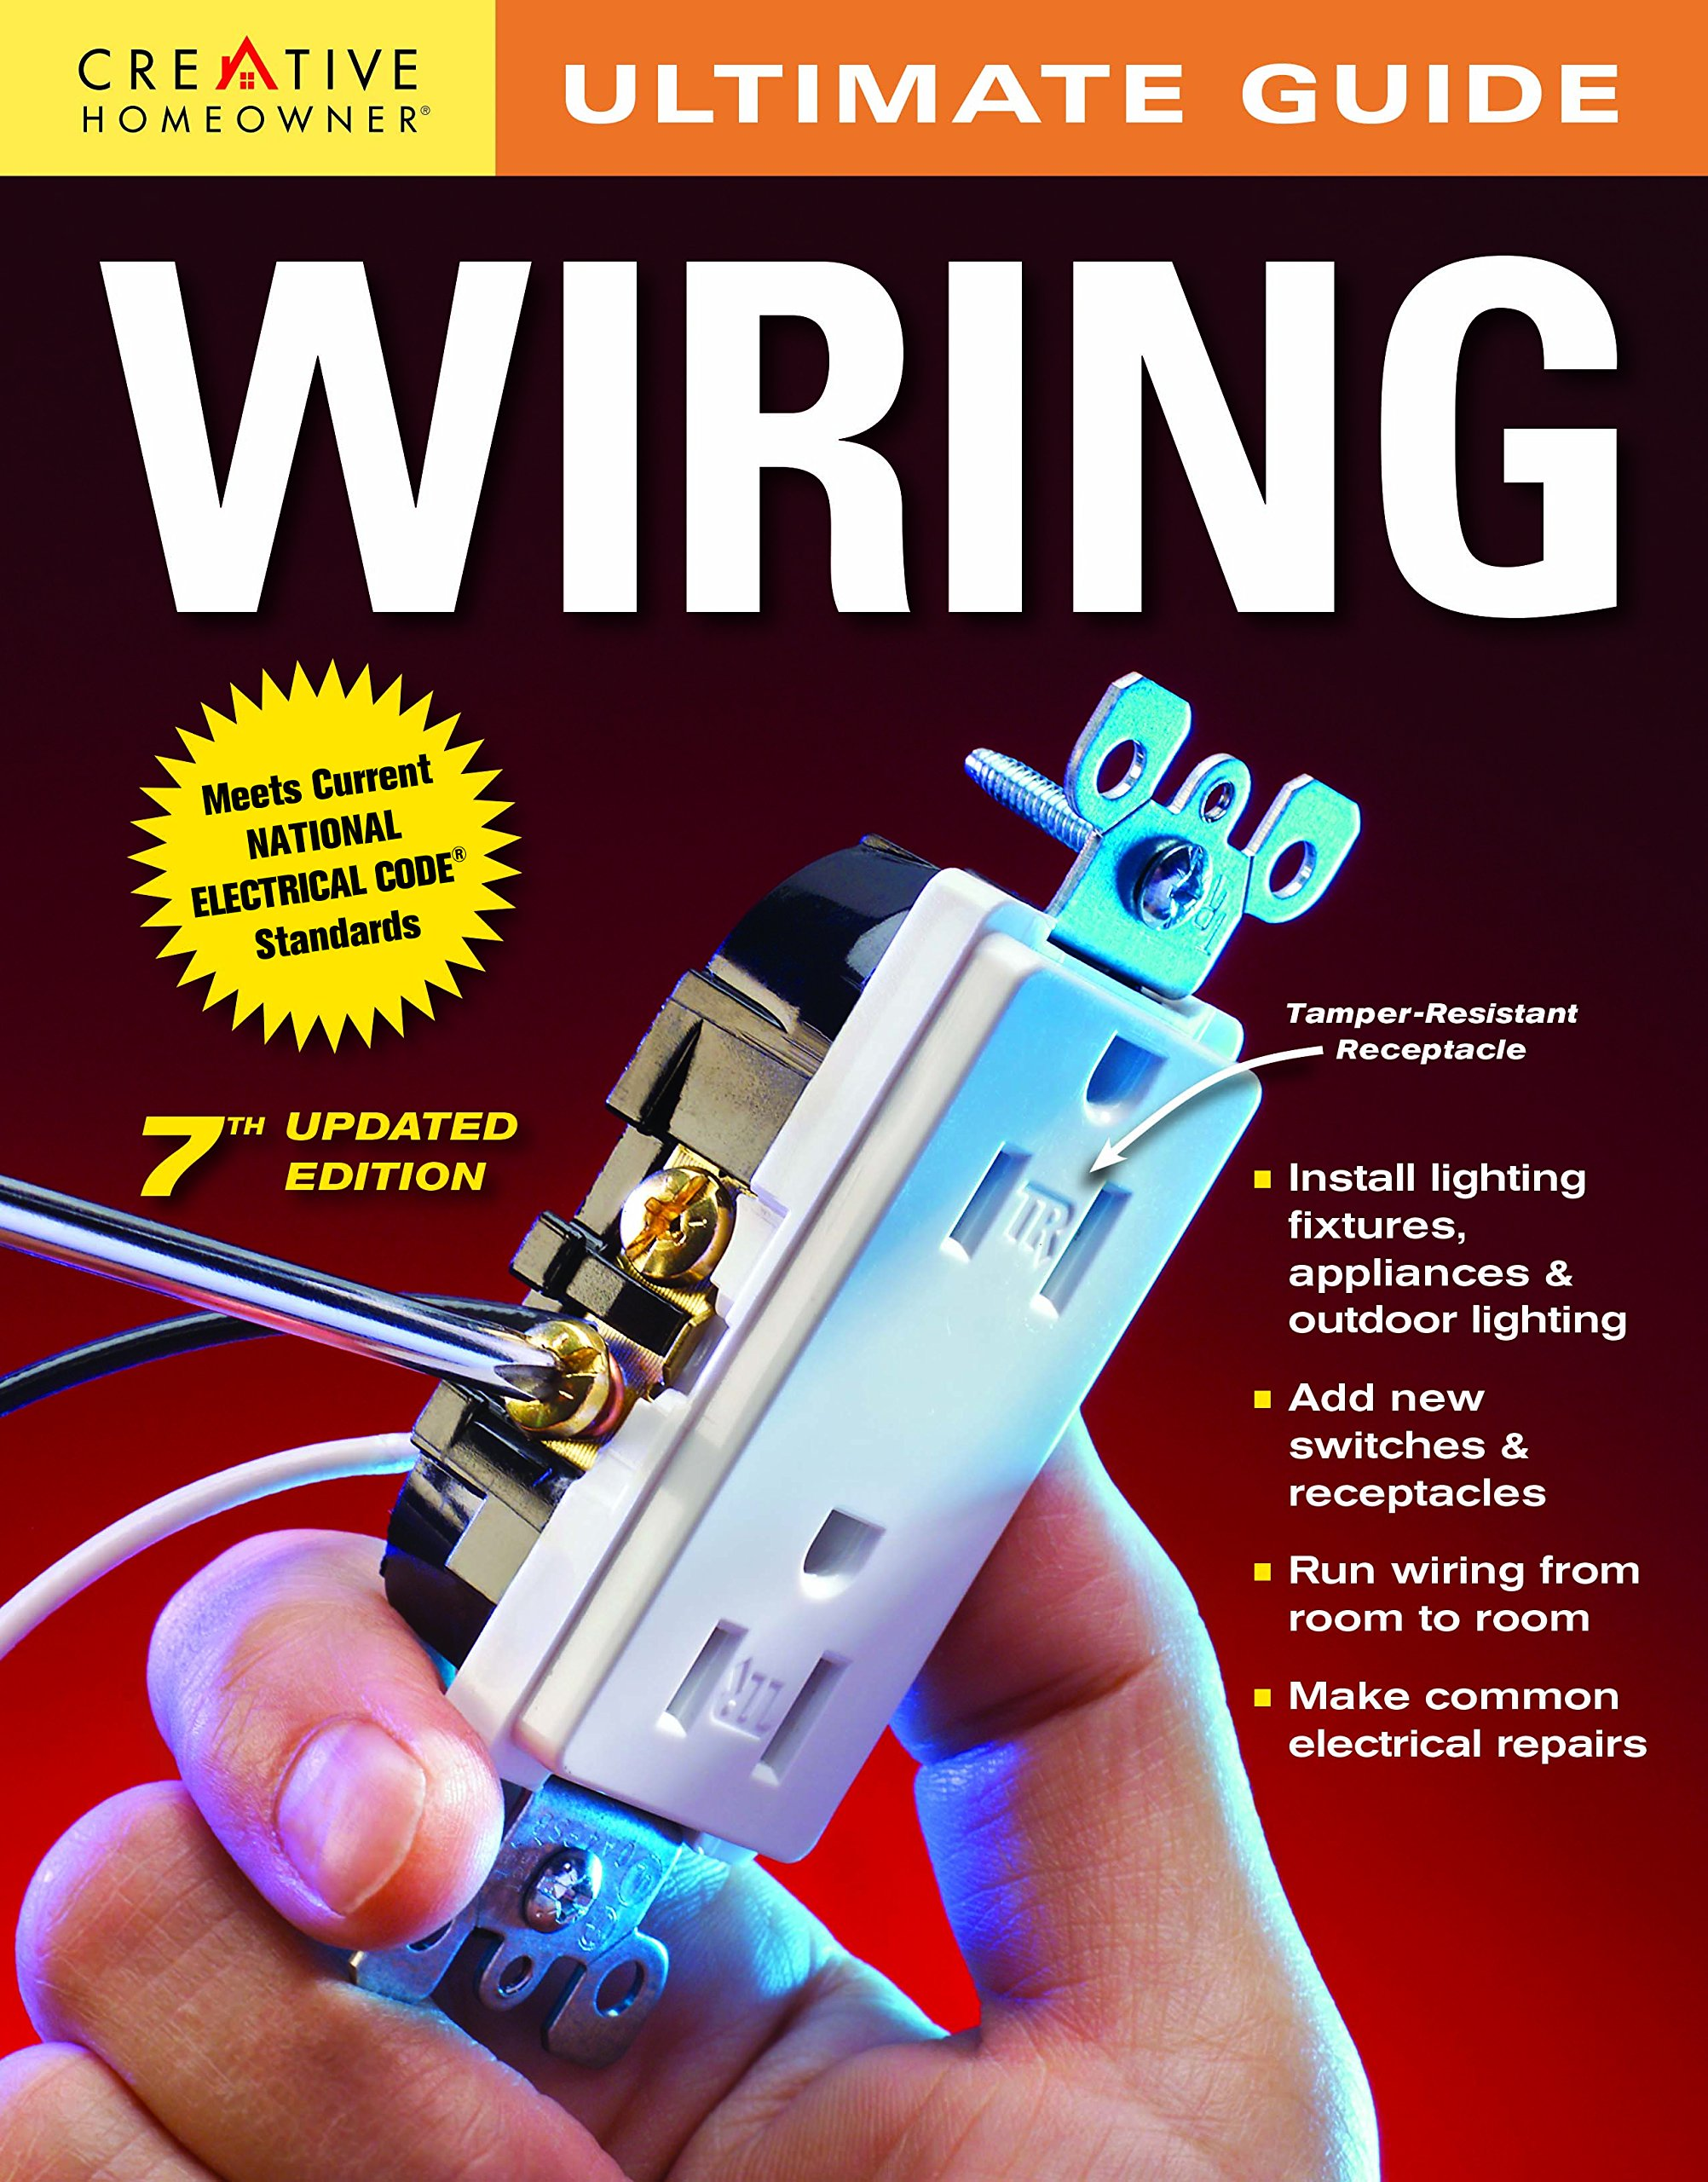 Ultimate Guide Wiring 7th Edition Home Improvement Editors Of Series For Homes Creative Homeowner How To 0078585114870 Books